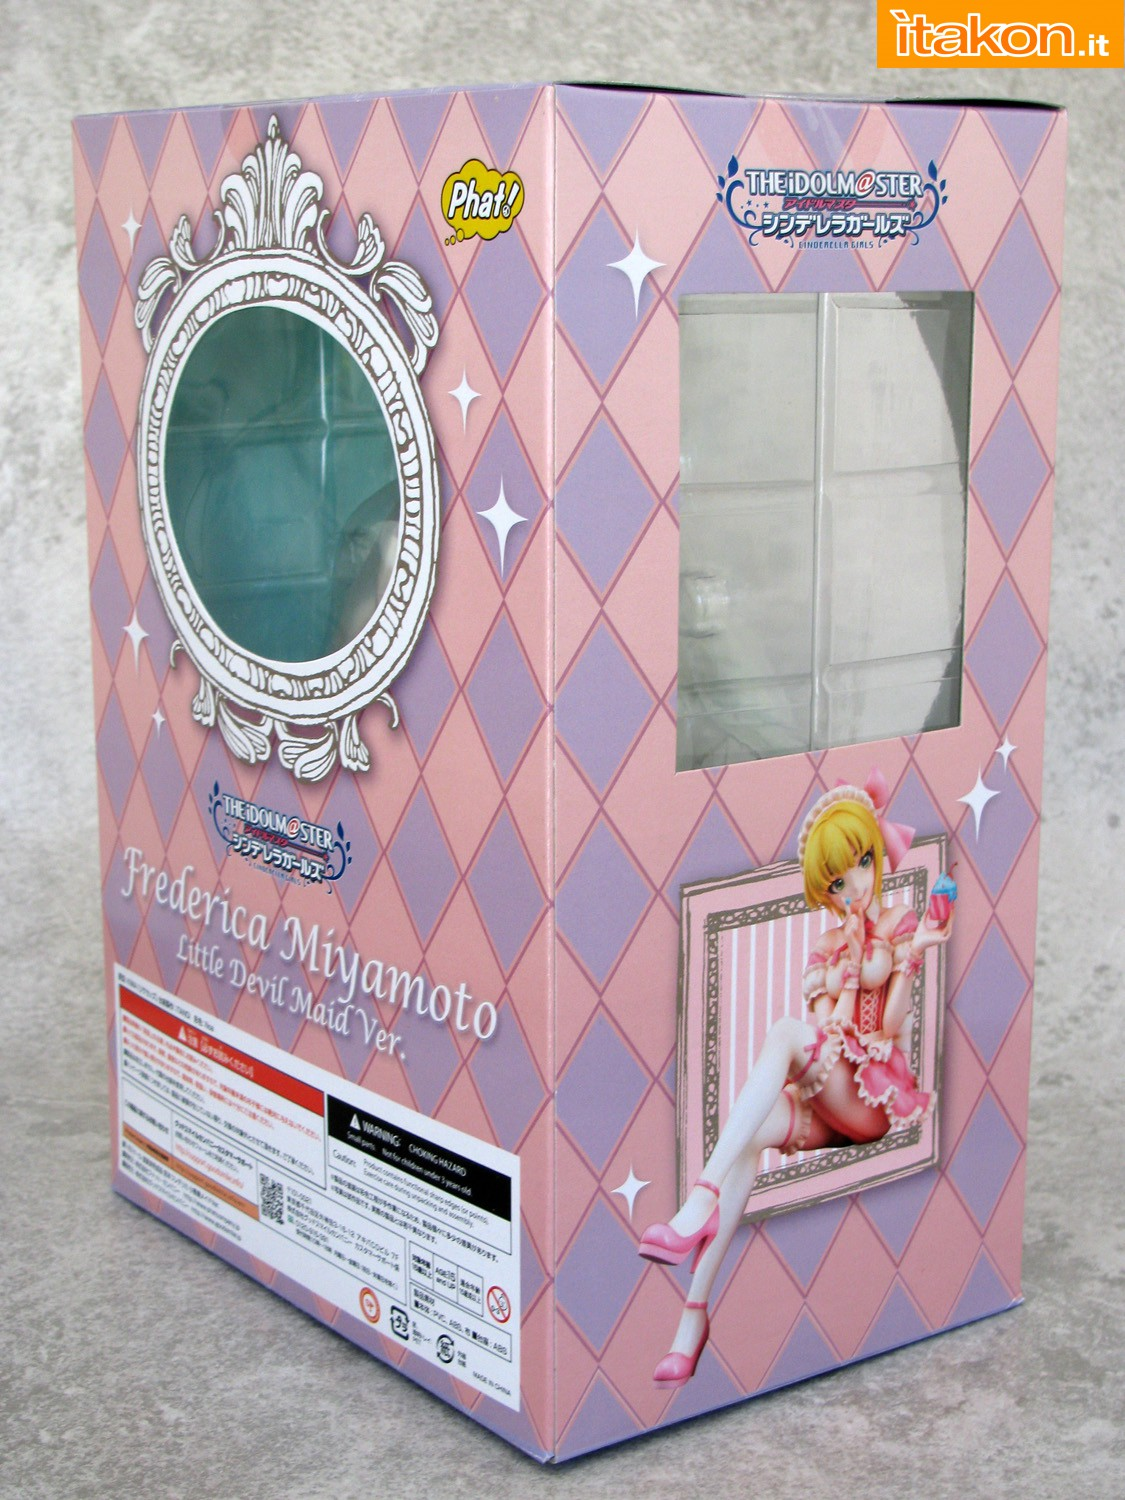 Link a 003 Frederica Miyamoto Little Devil Maid Phat recensione